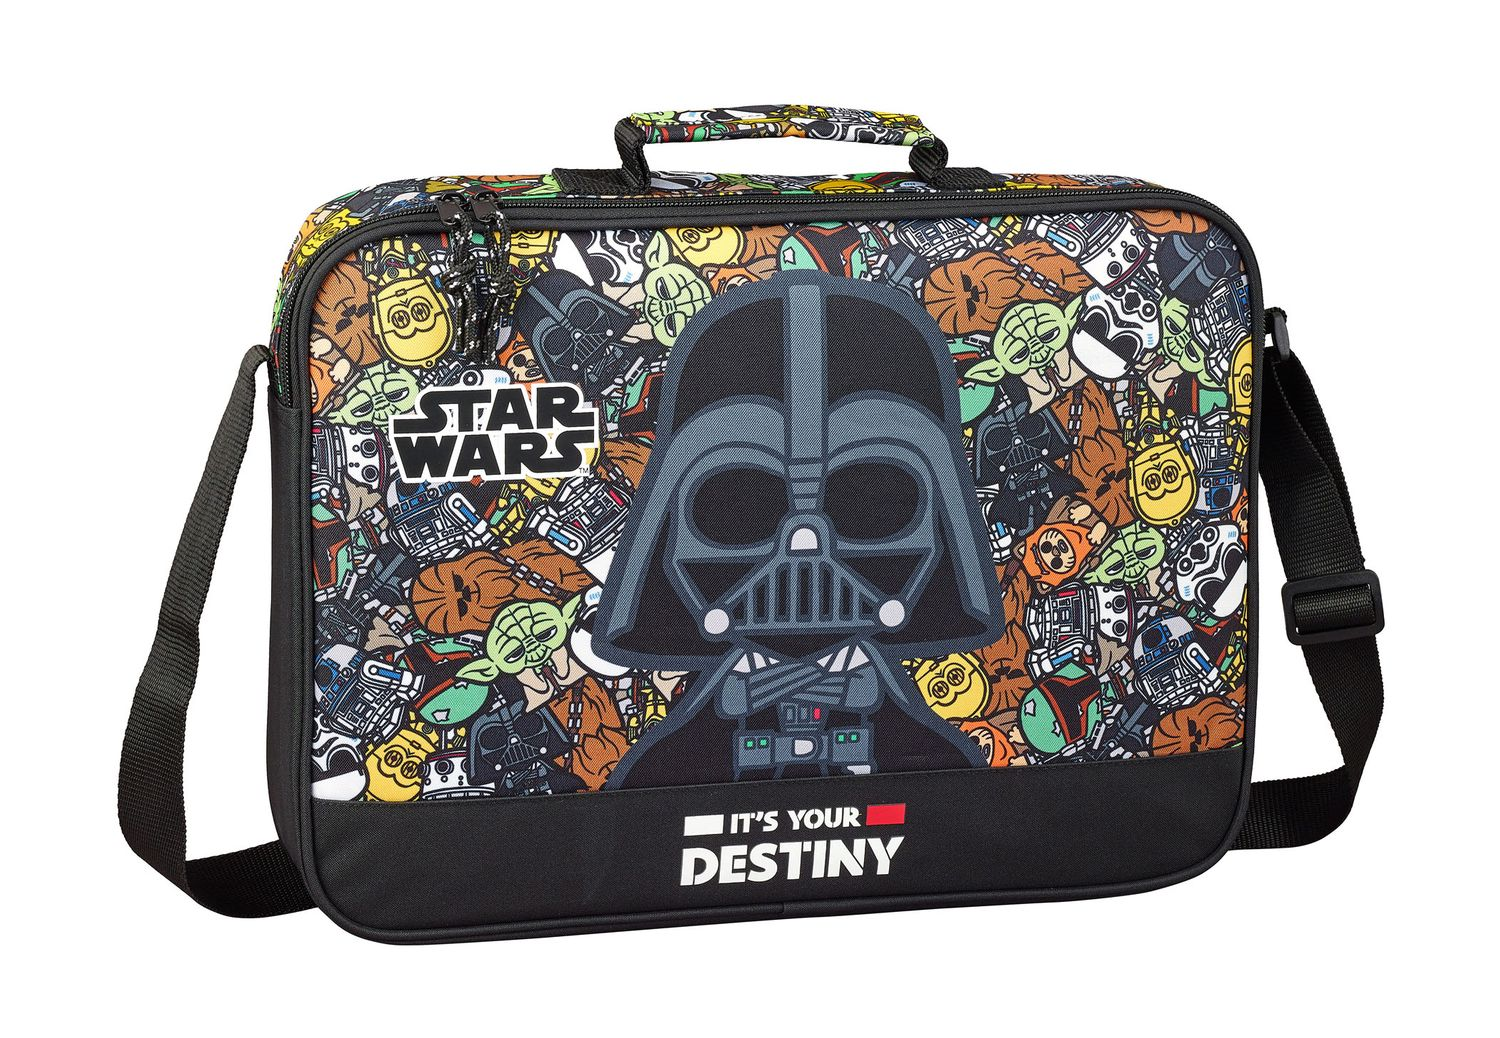 Star Wars GALAXY Briefcase Shoulder Bag 38cm – image 1